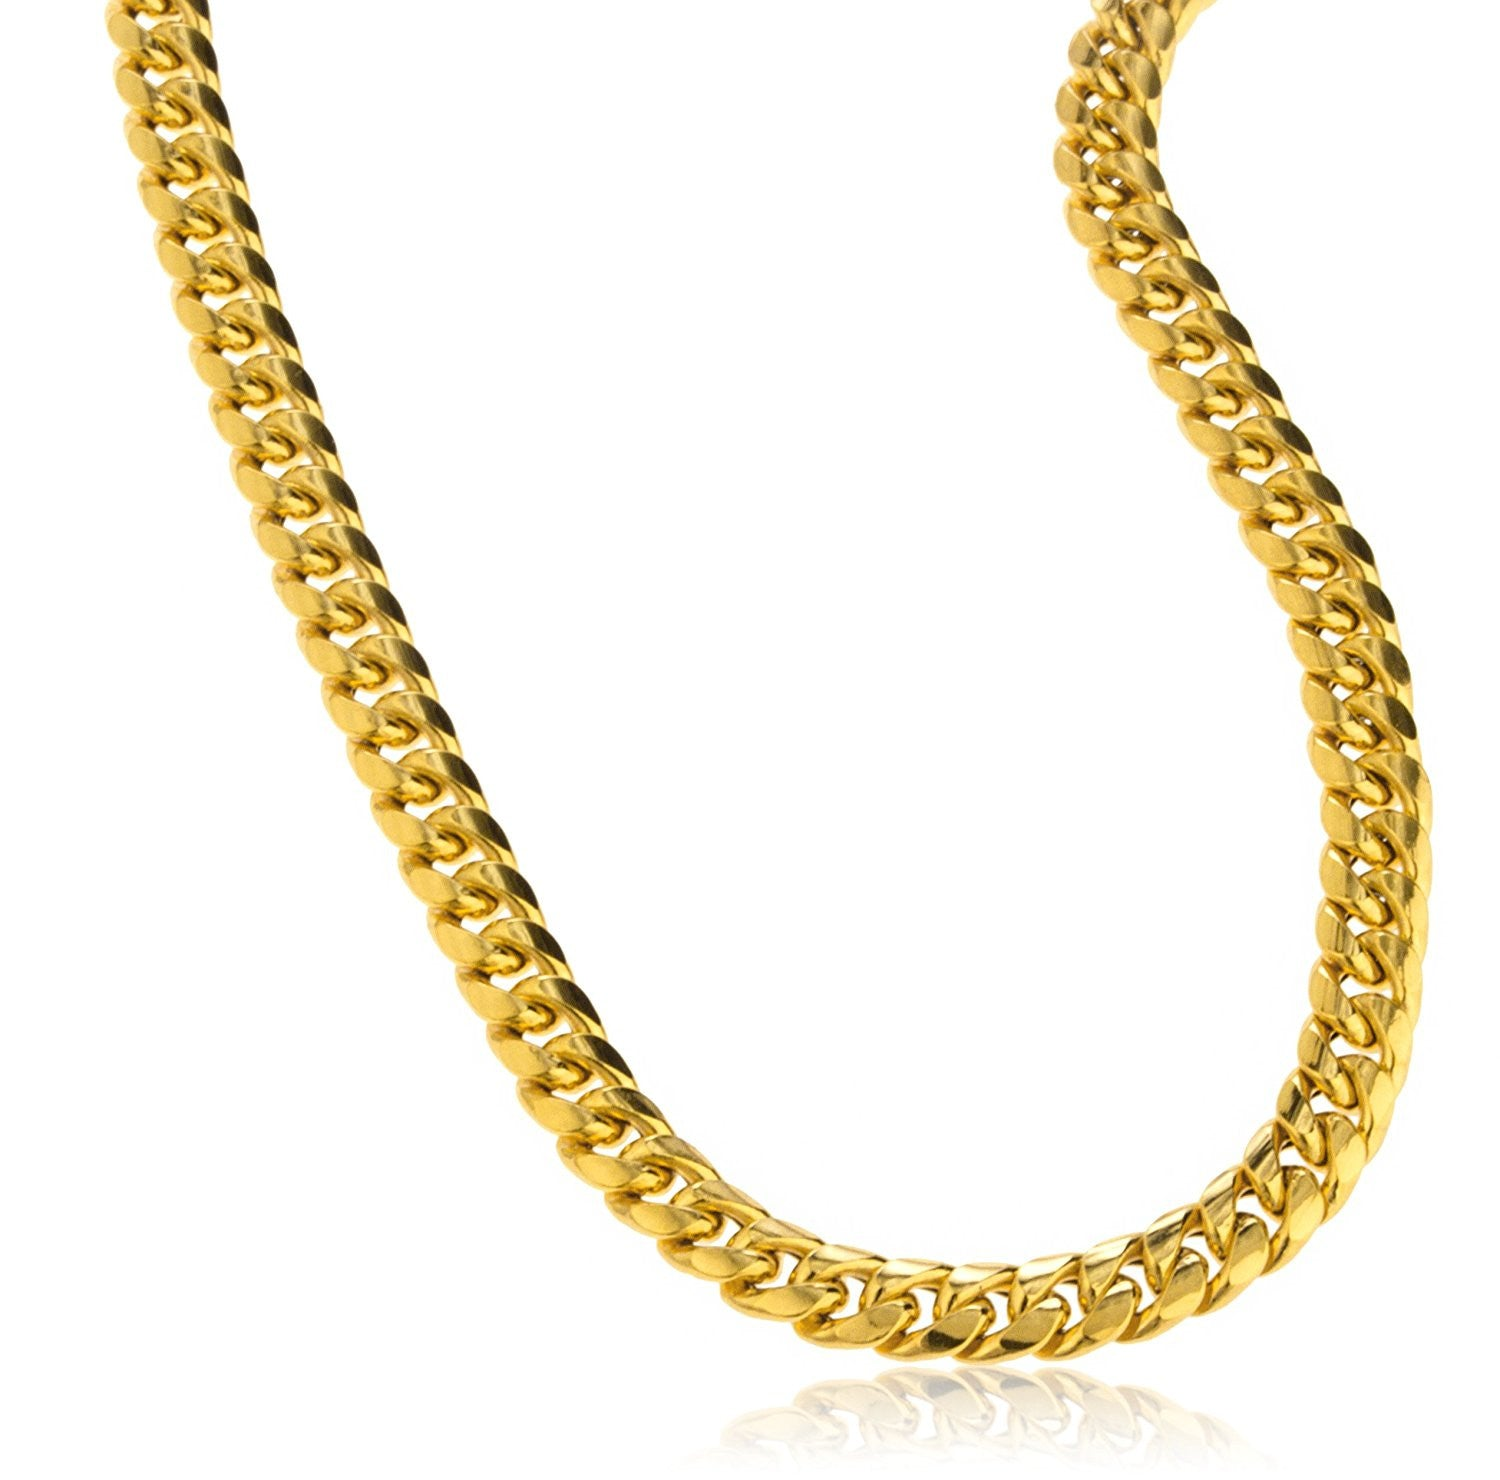 chain zm necklace stainless en kay hover zoom s men foxtail mens to length mv steel kaystore